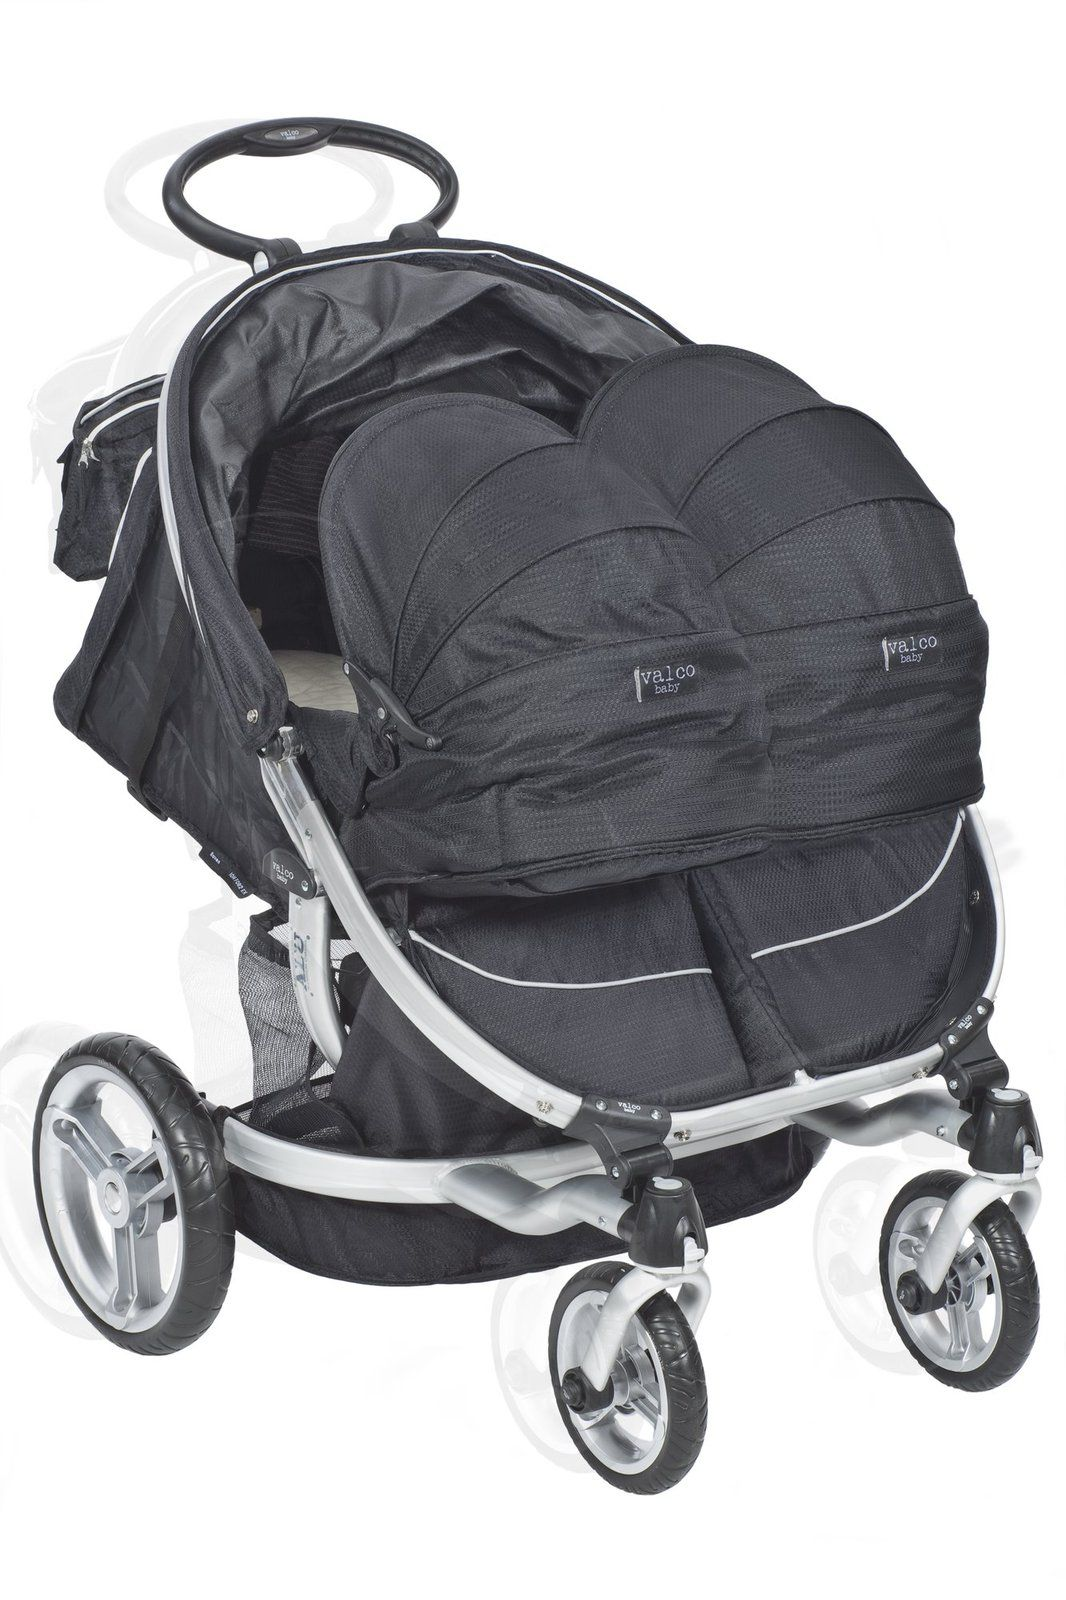 Twin stroller Baby strollers, Baby buggy